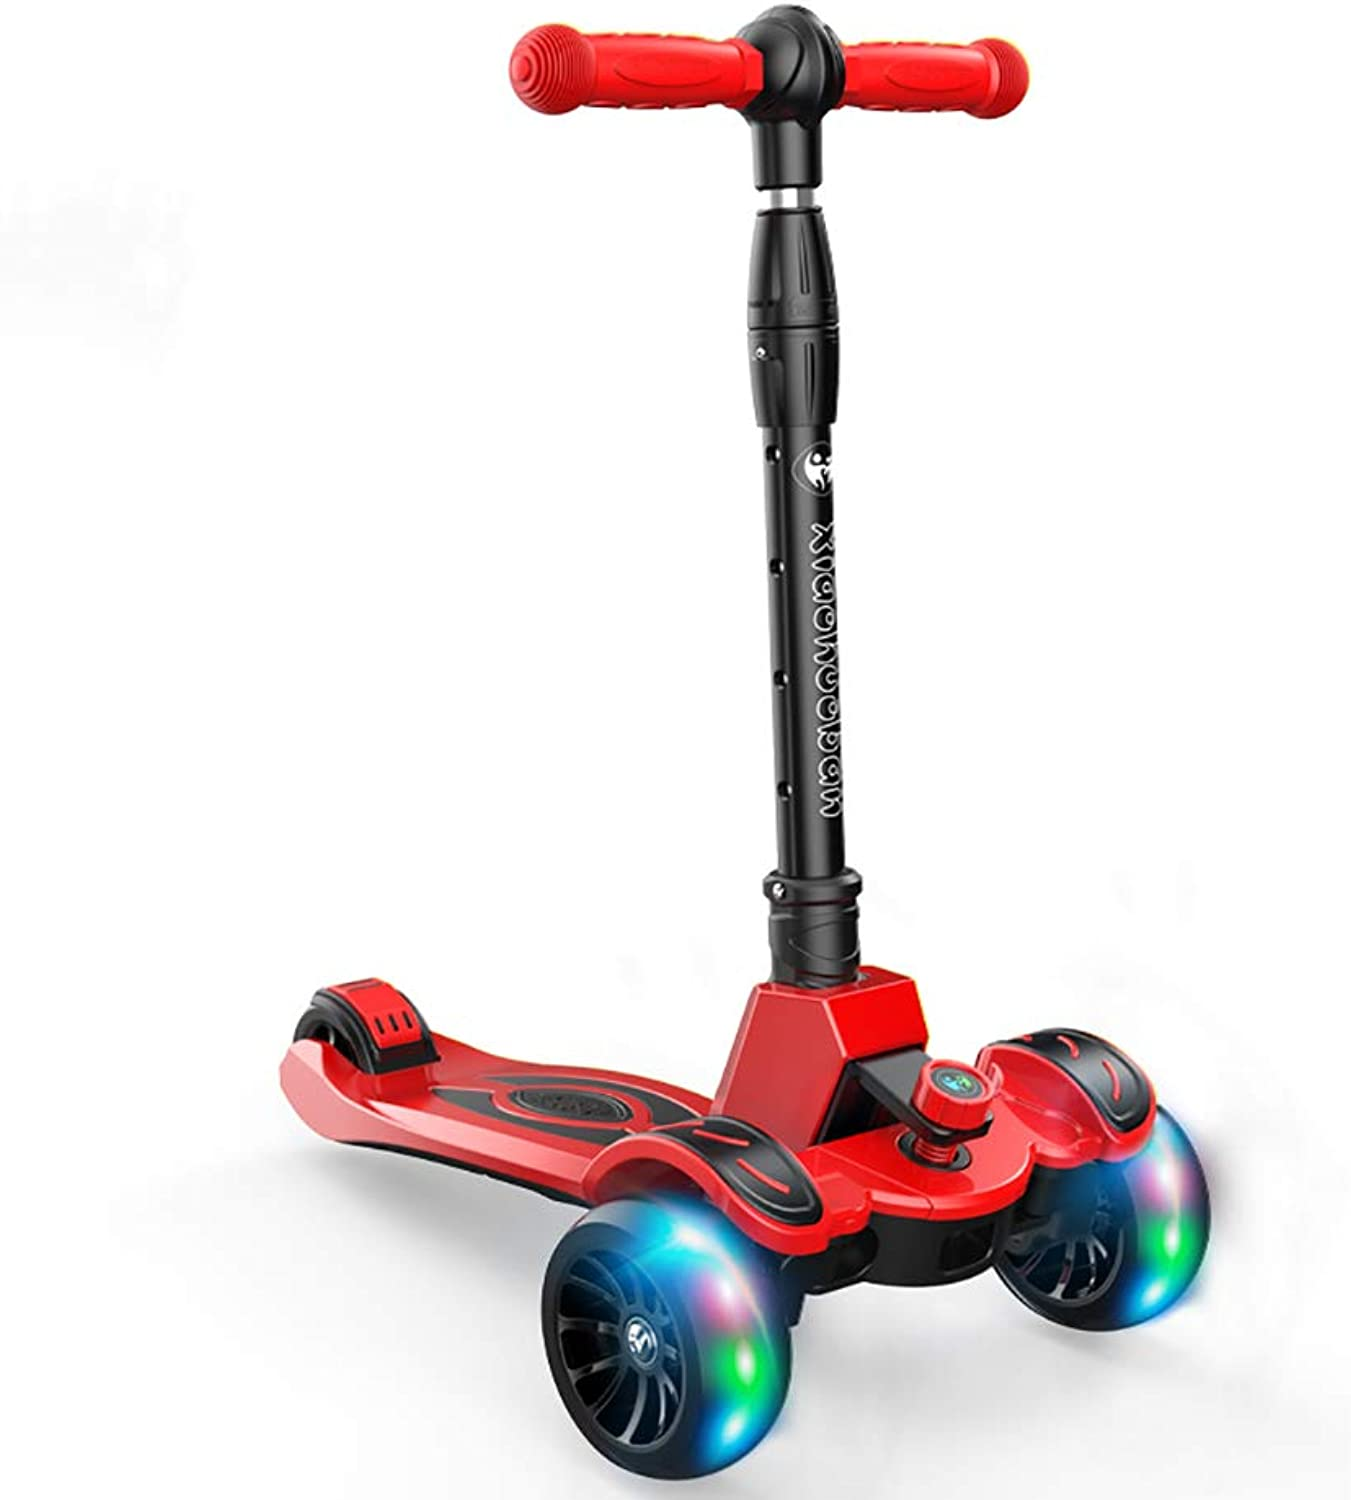 YXX-Scooter Aluminum Alloy Kick Scooters for Boys and Girls, Lightweight Folding Kids Scooter 7 Lb, 110lb Weight Capacity